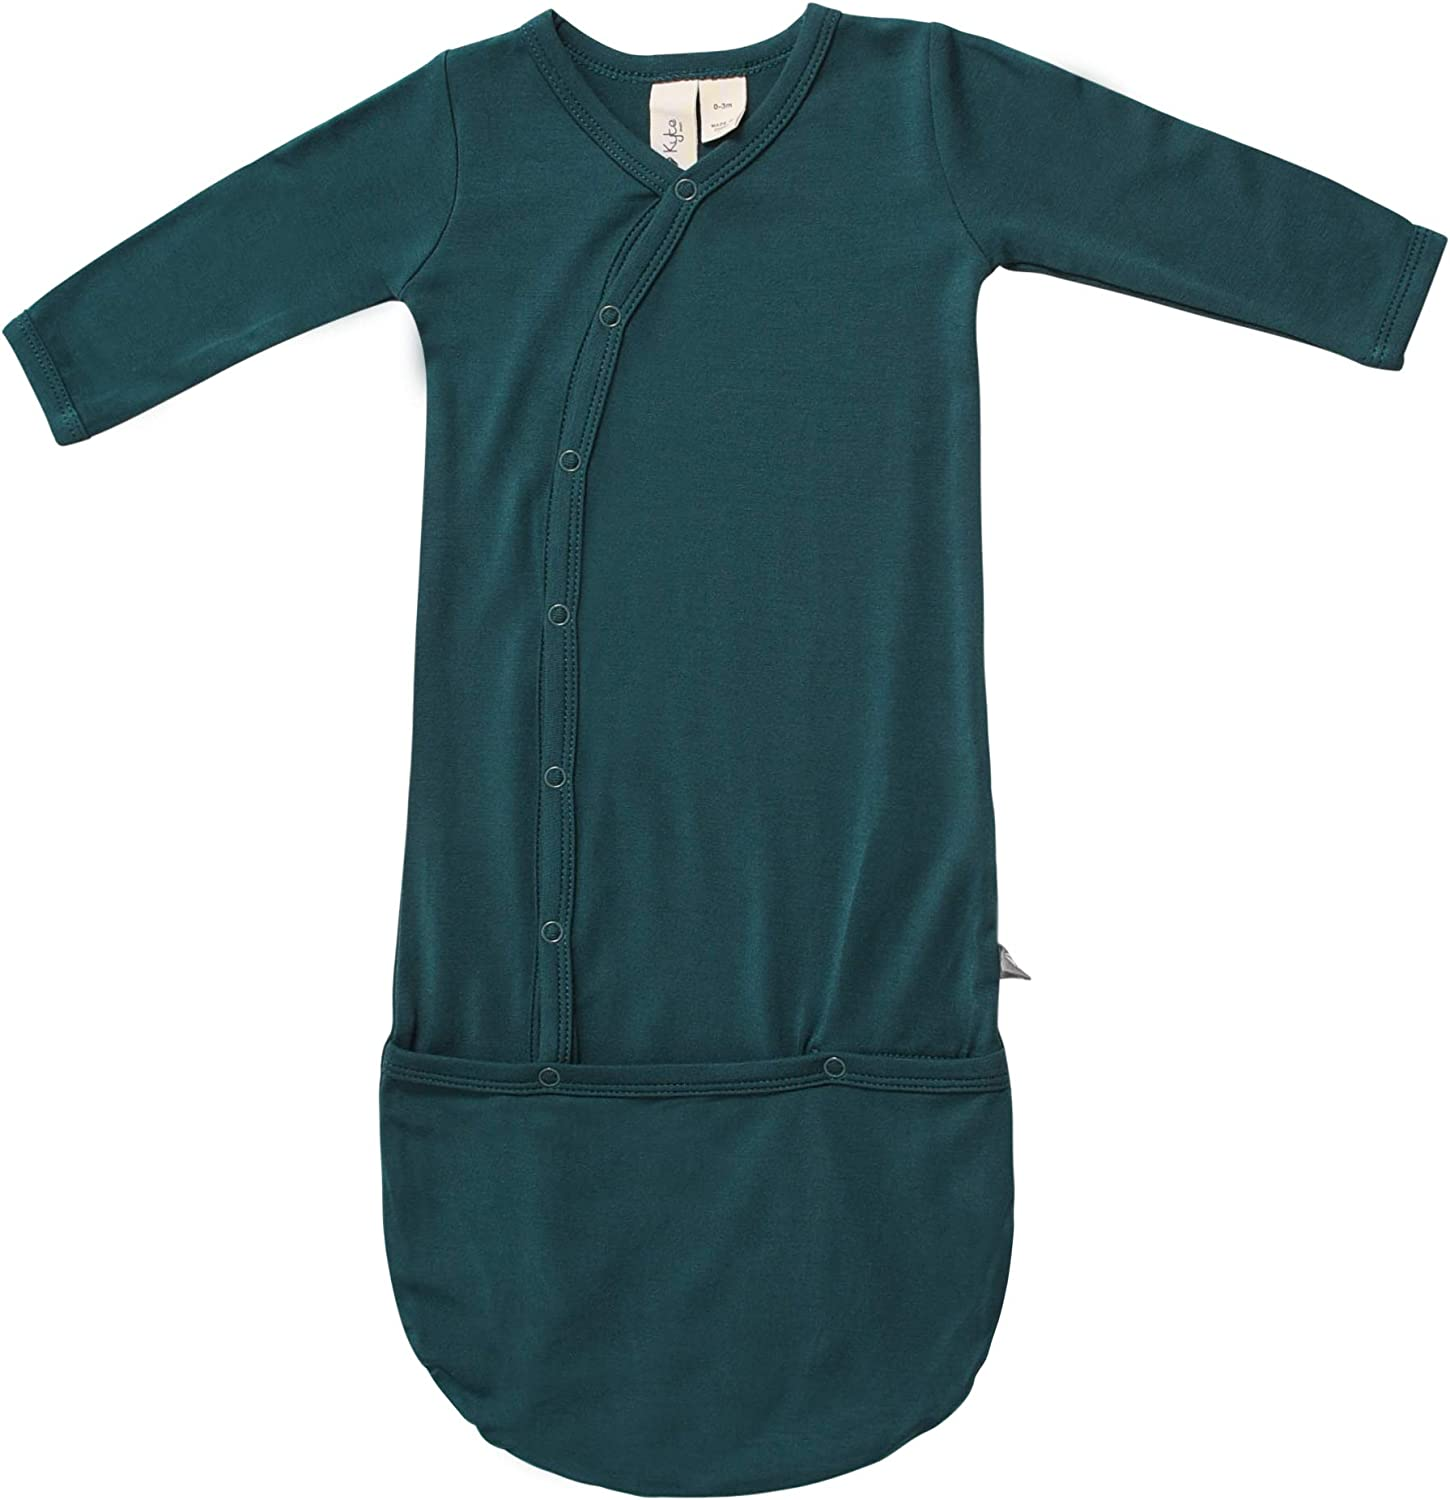 Unisex Baby Sleeper Gowns Made of Soft Bamboo Rayon Material KYTE BABY Bundlers